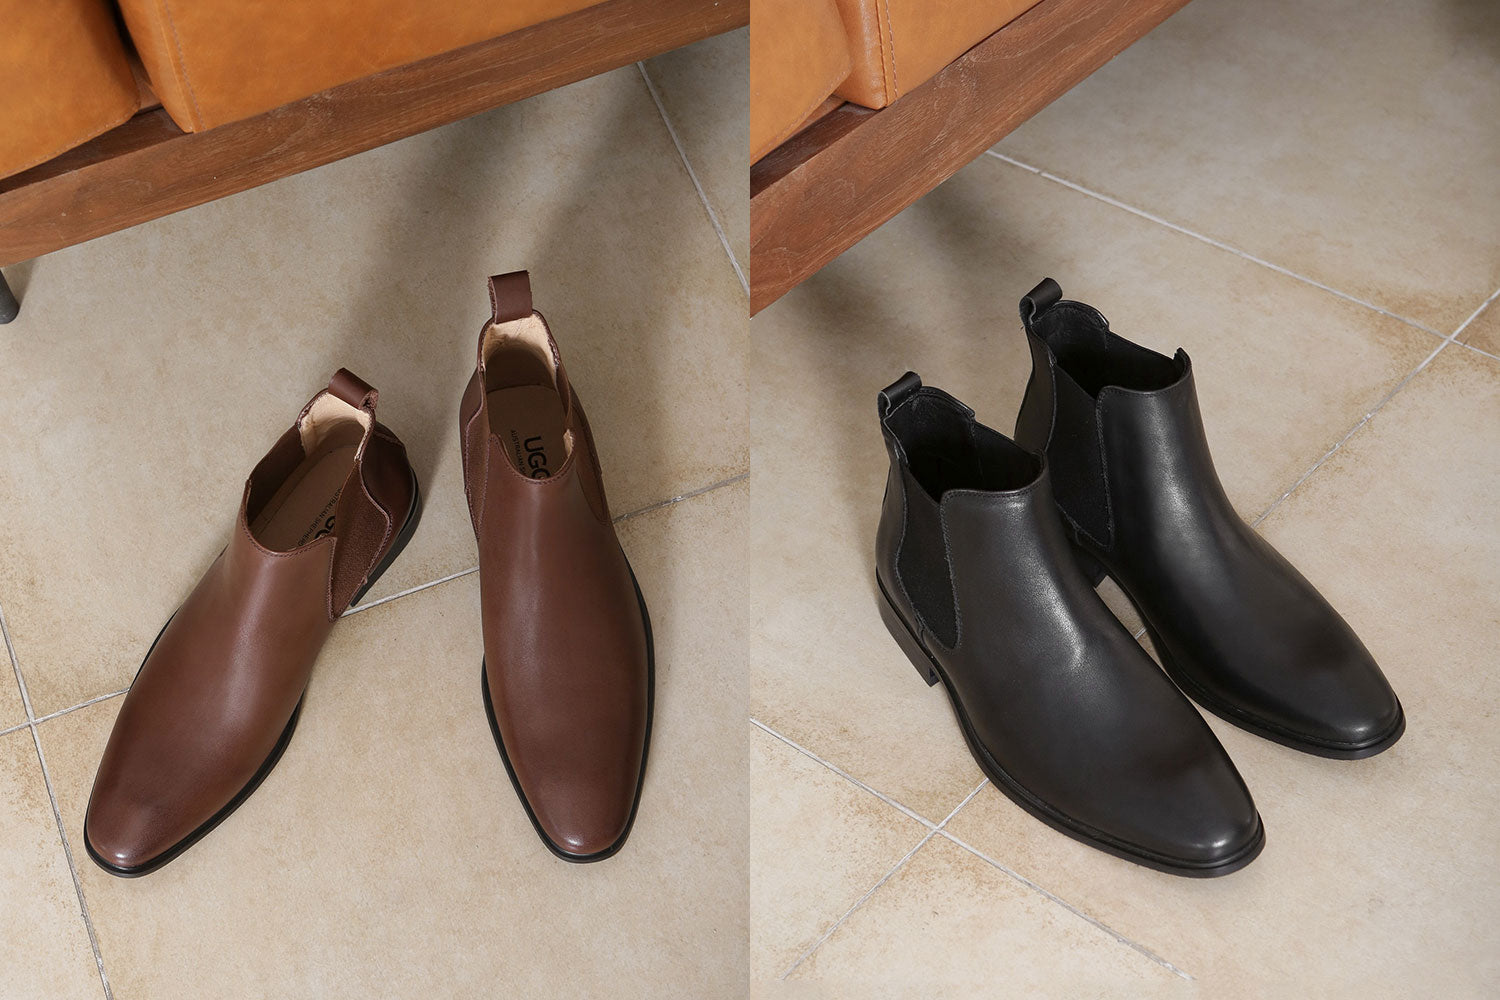 men's fashion boots in brown